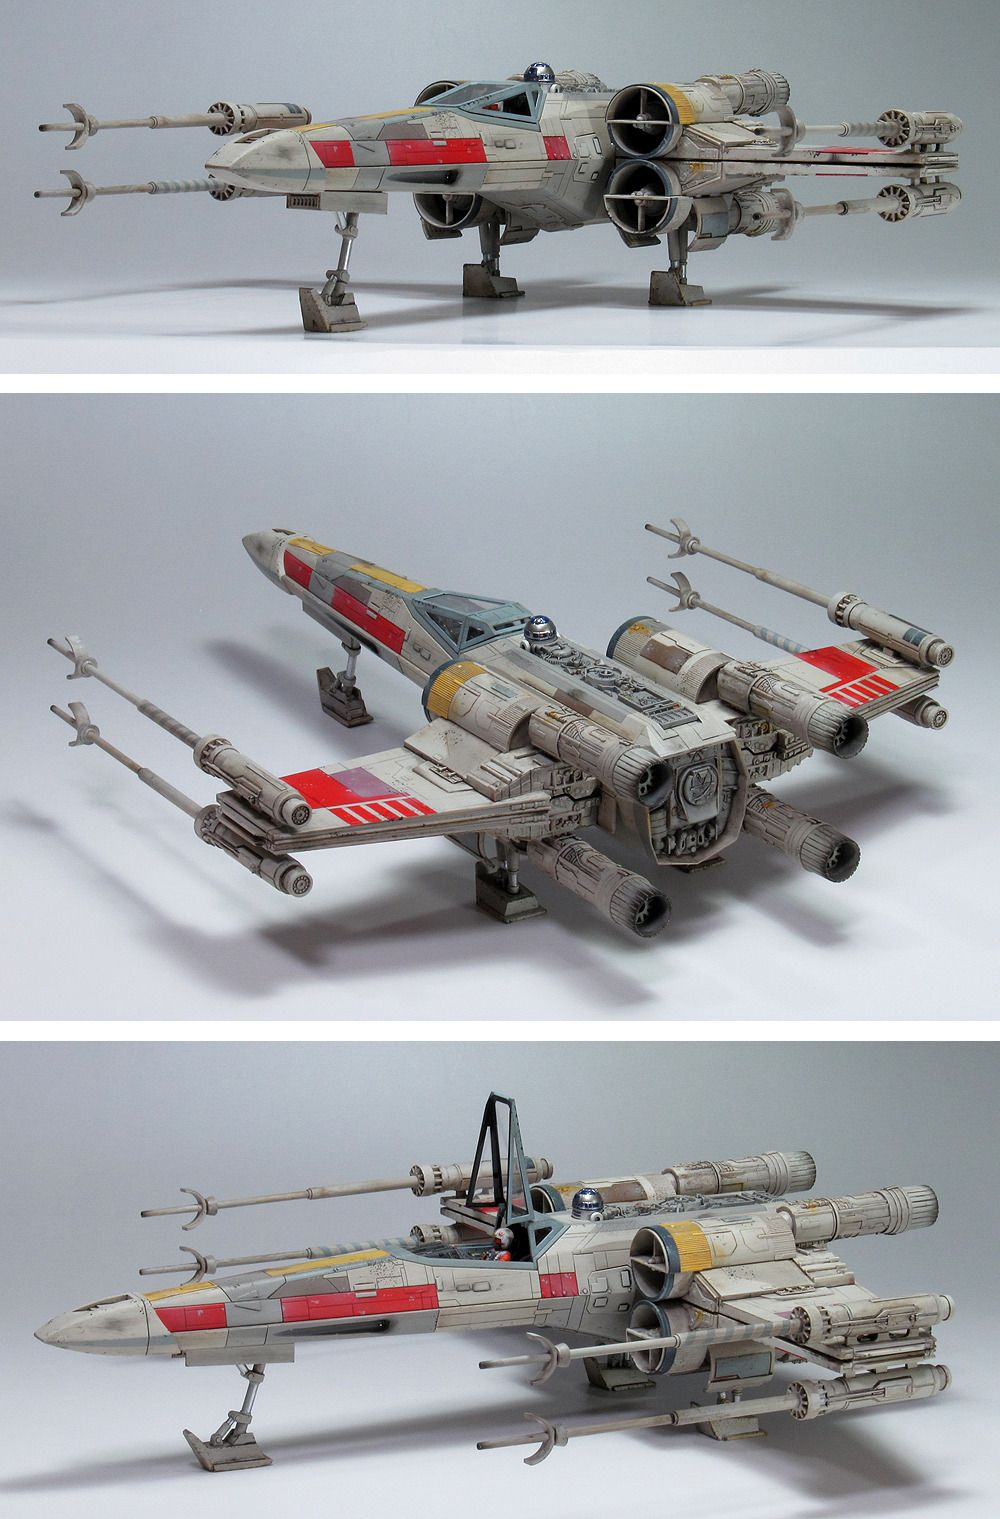 G Cube S Bandai X Star Wars 1 48 X Wing Starfighter Moving Edition A Beautiful Photo Review Links Info Star Wars Vehicles Star Wars Models Star Wars Images